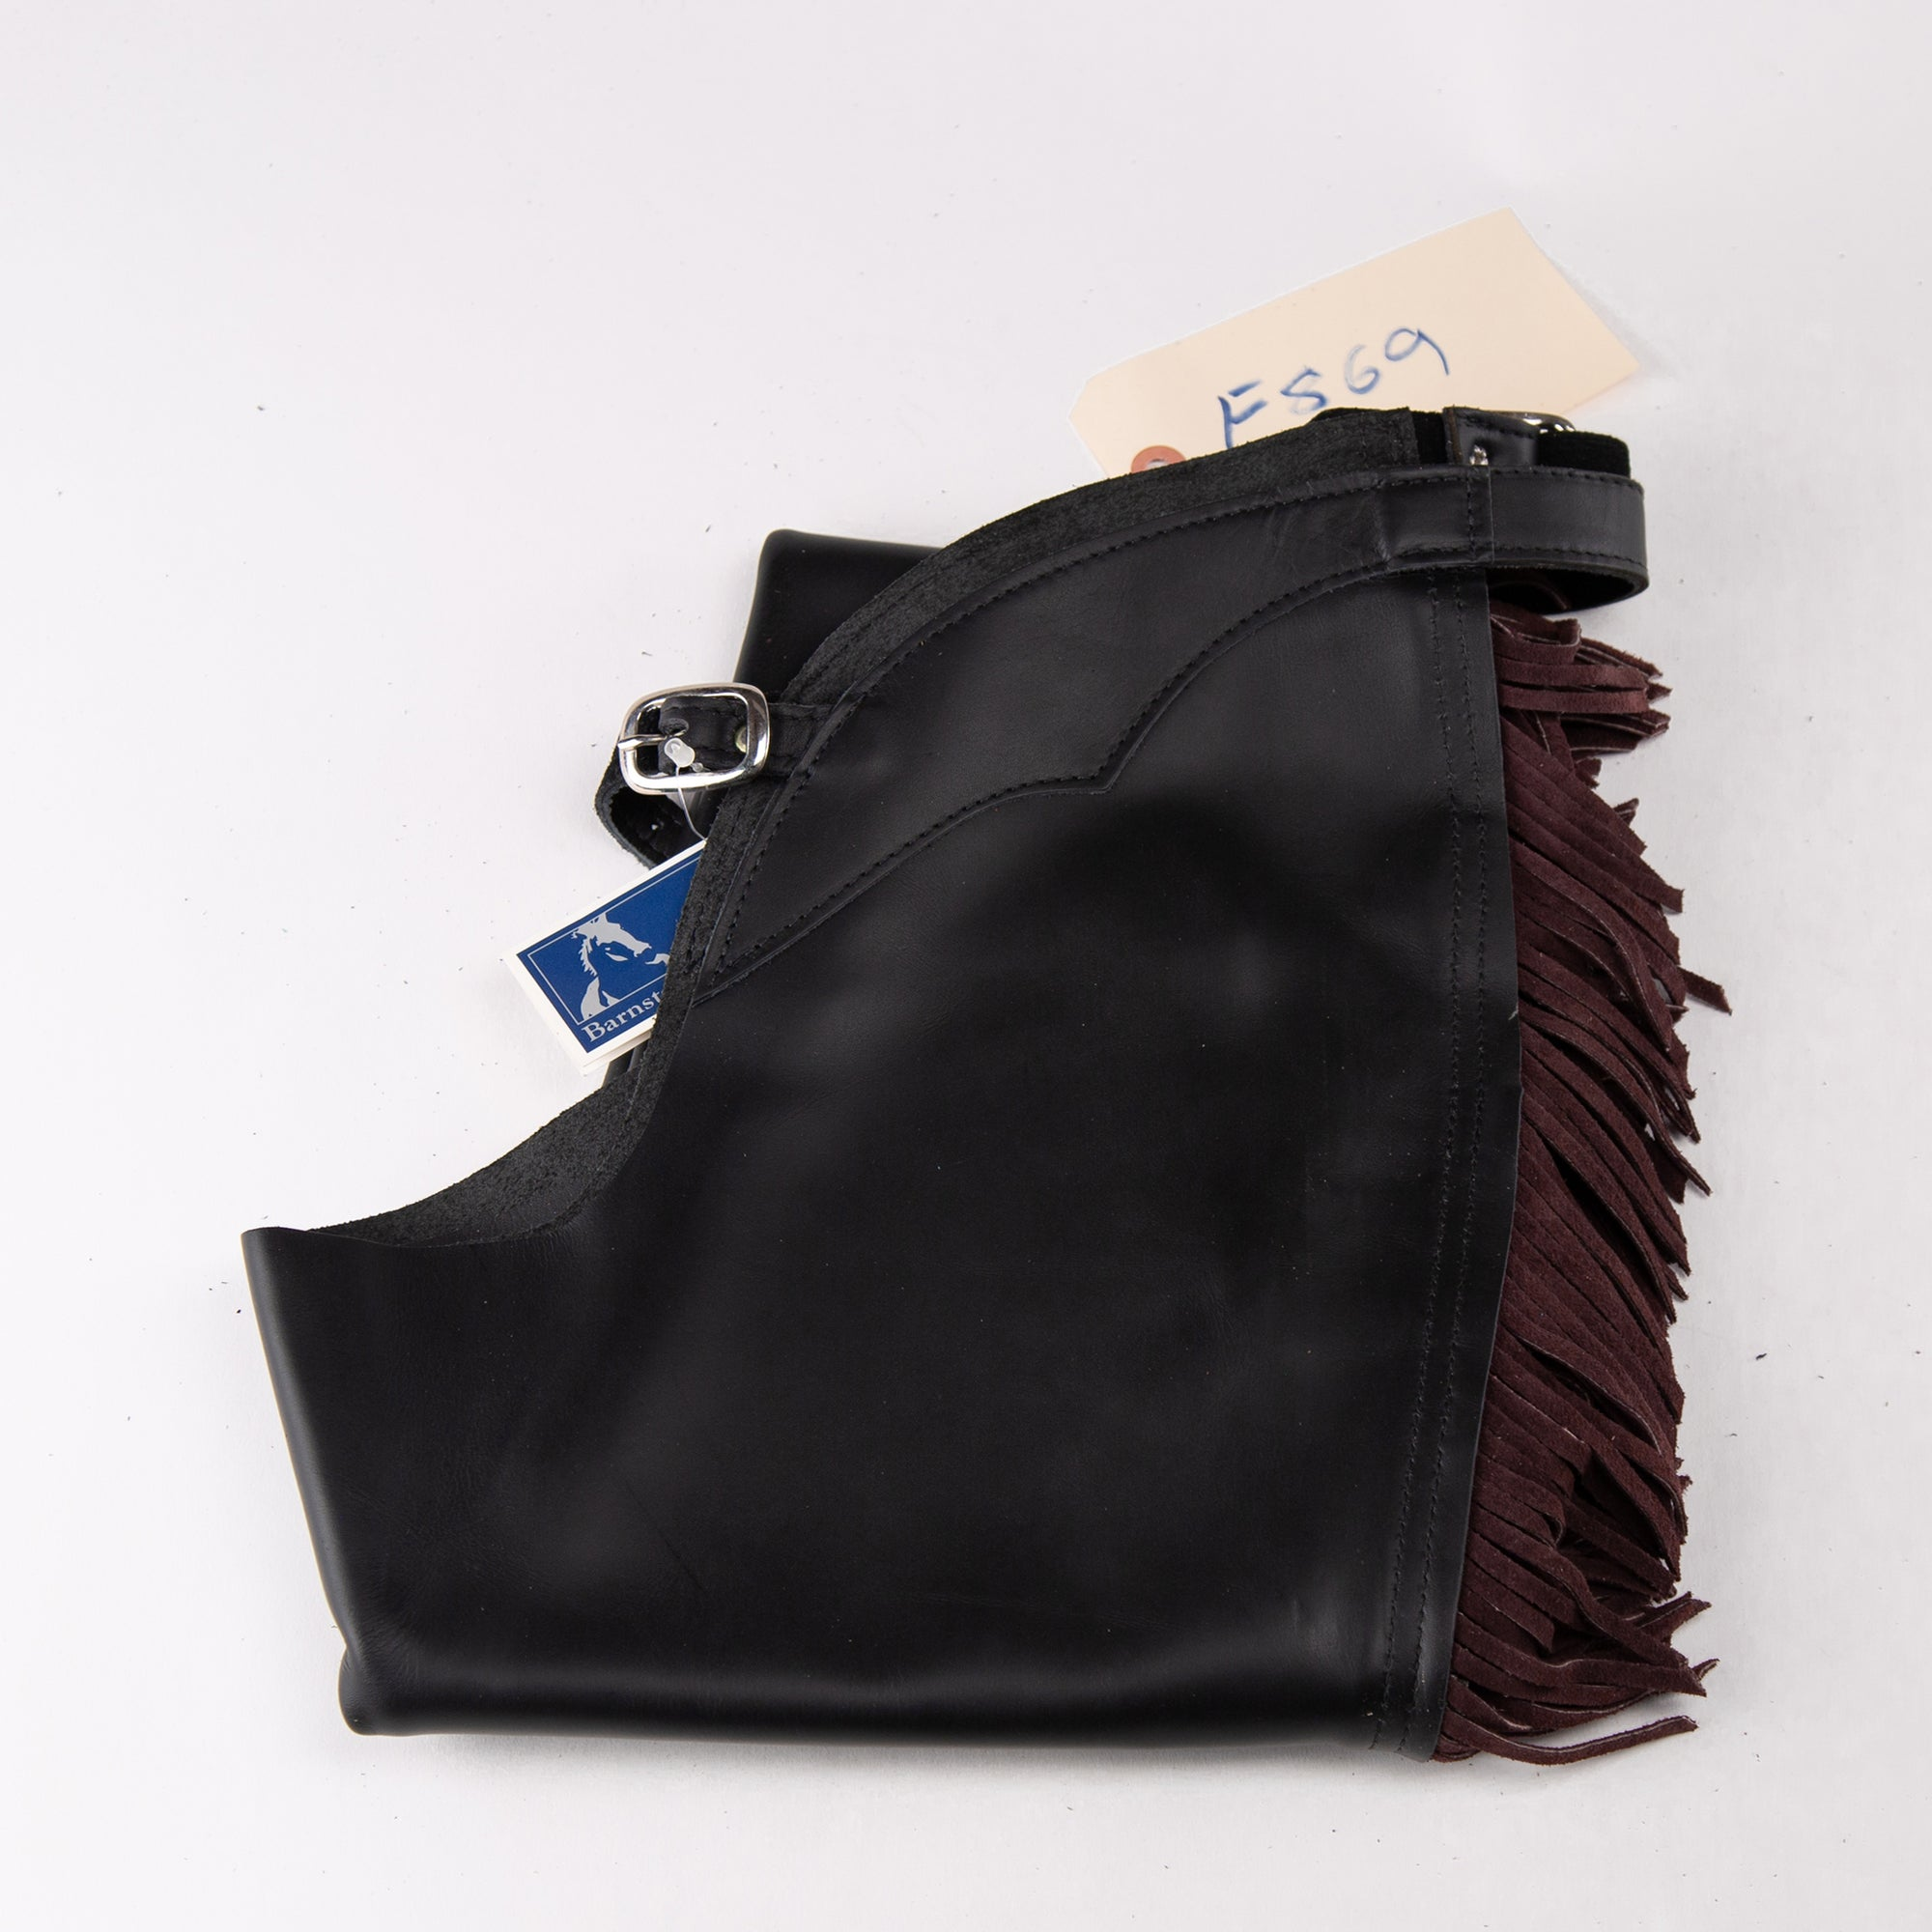 English Schooling Chaps - Black Top Grain Leather - Burgundy Fringe